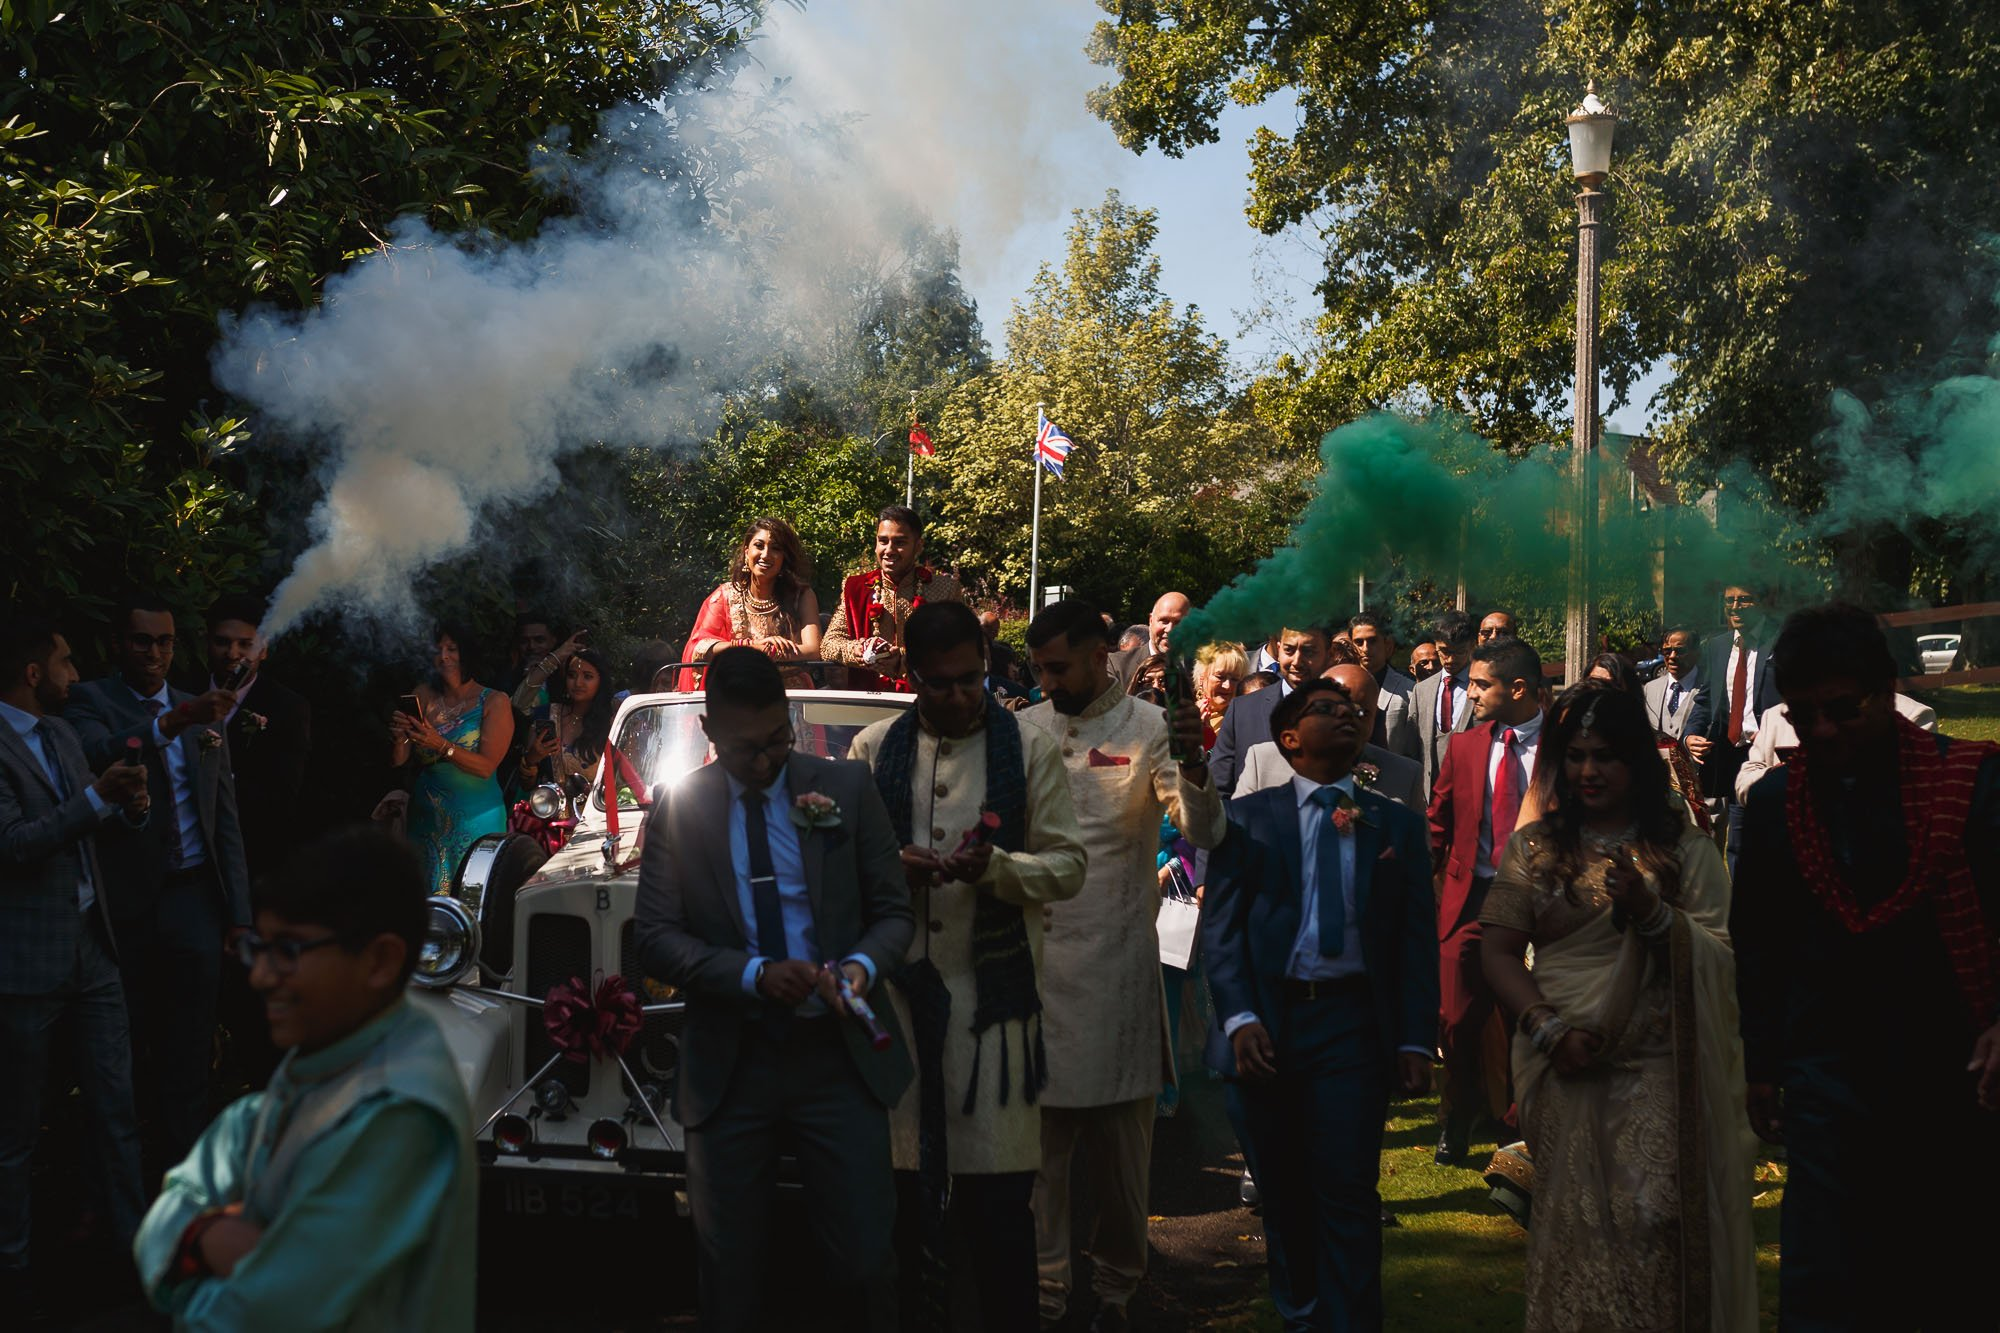 Dunchurch Park Hotel, Asian wedding photographer Midlands, jaan arrival, smoke grenades